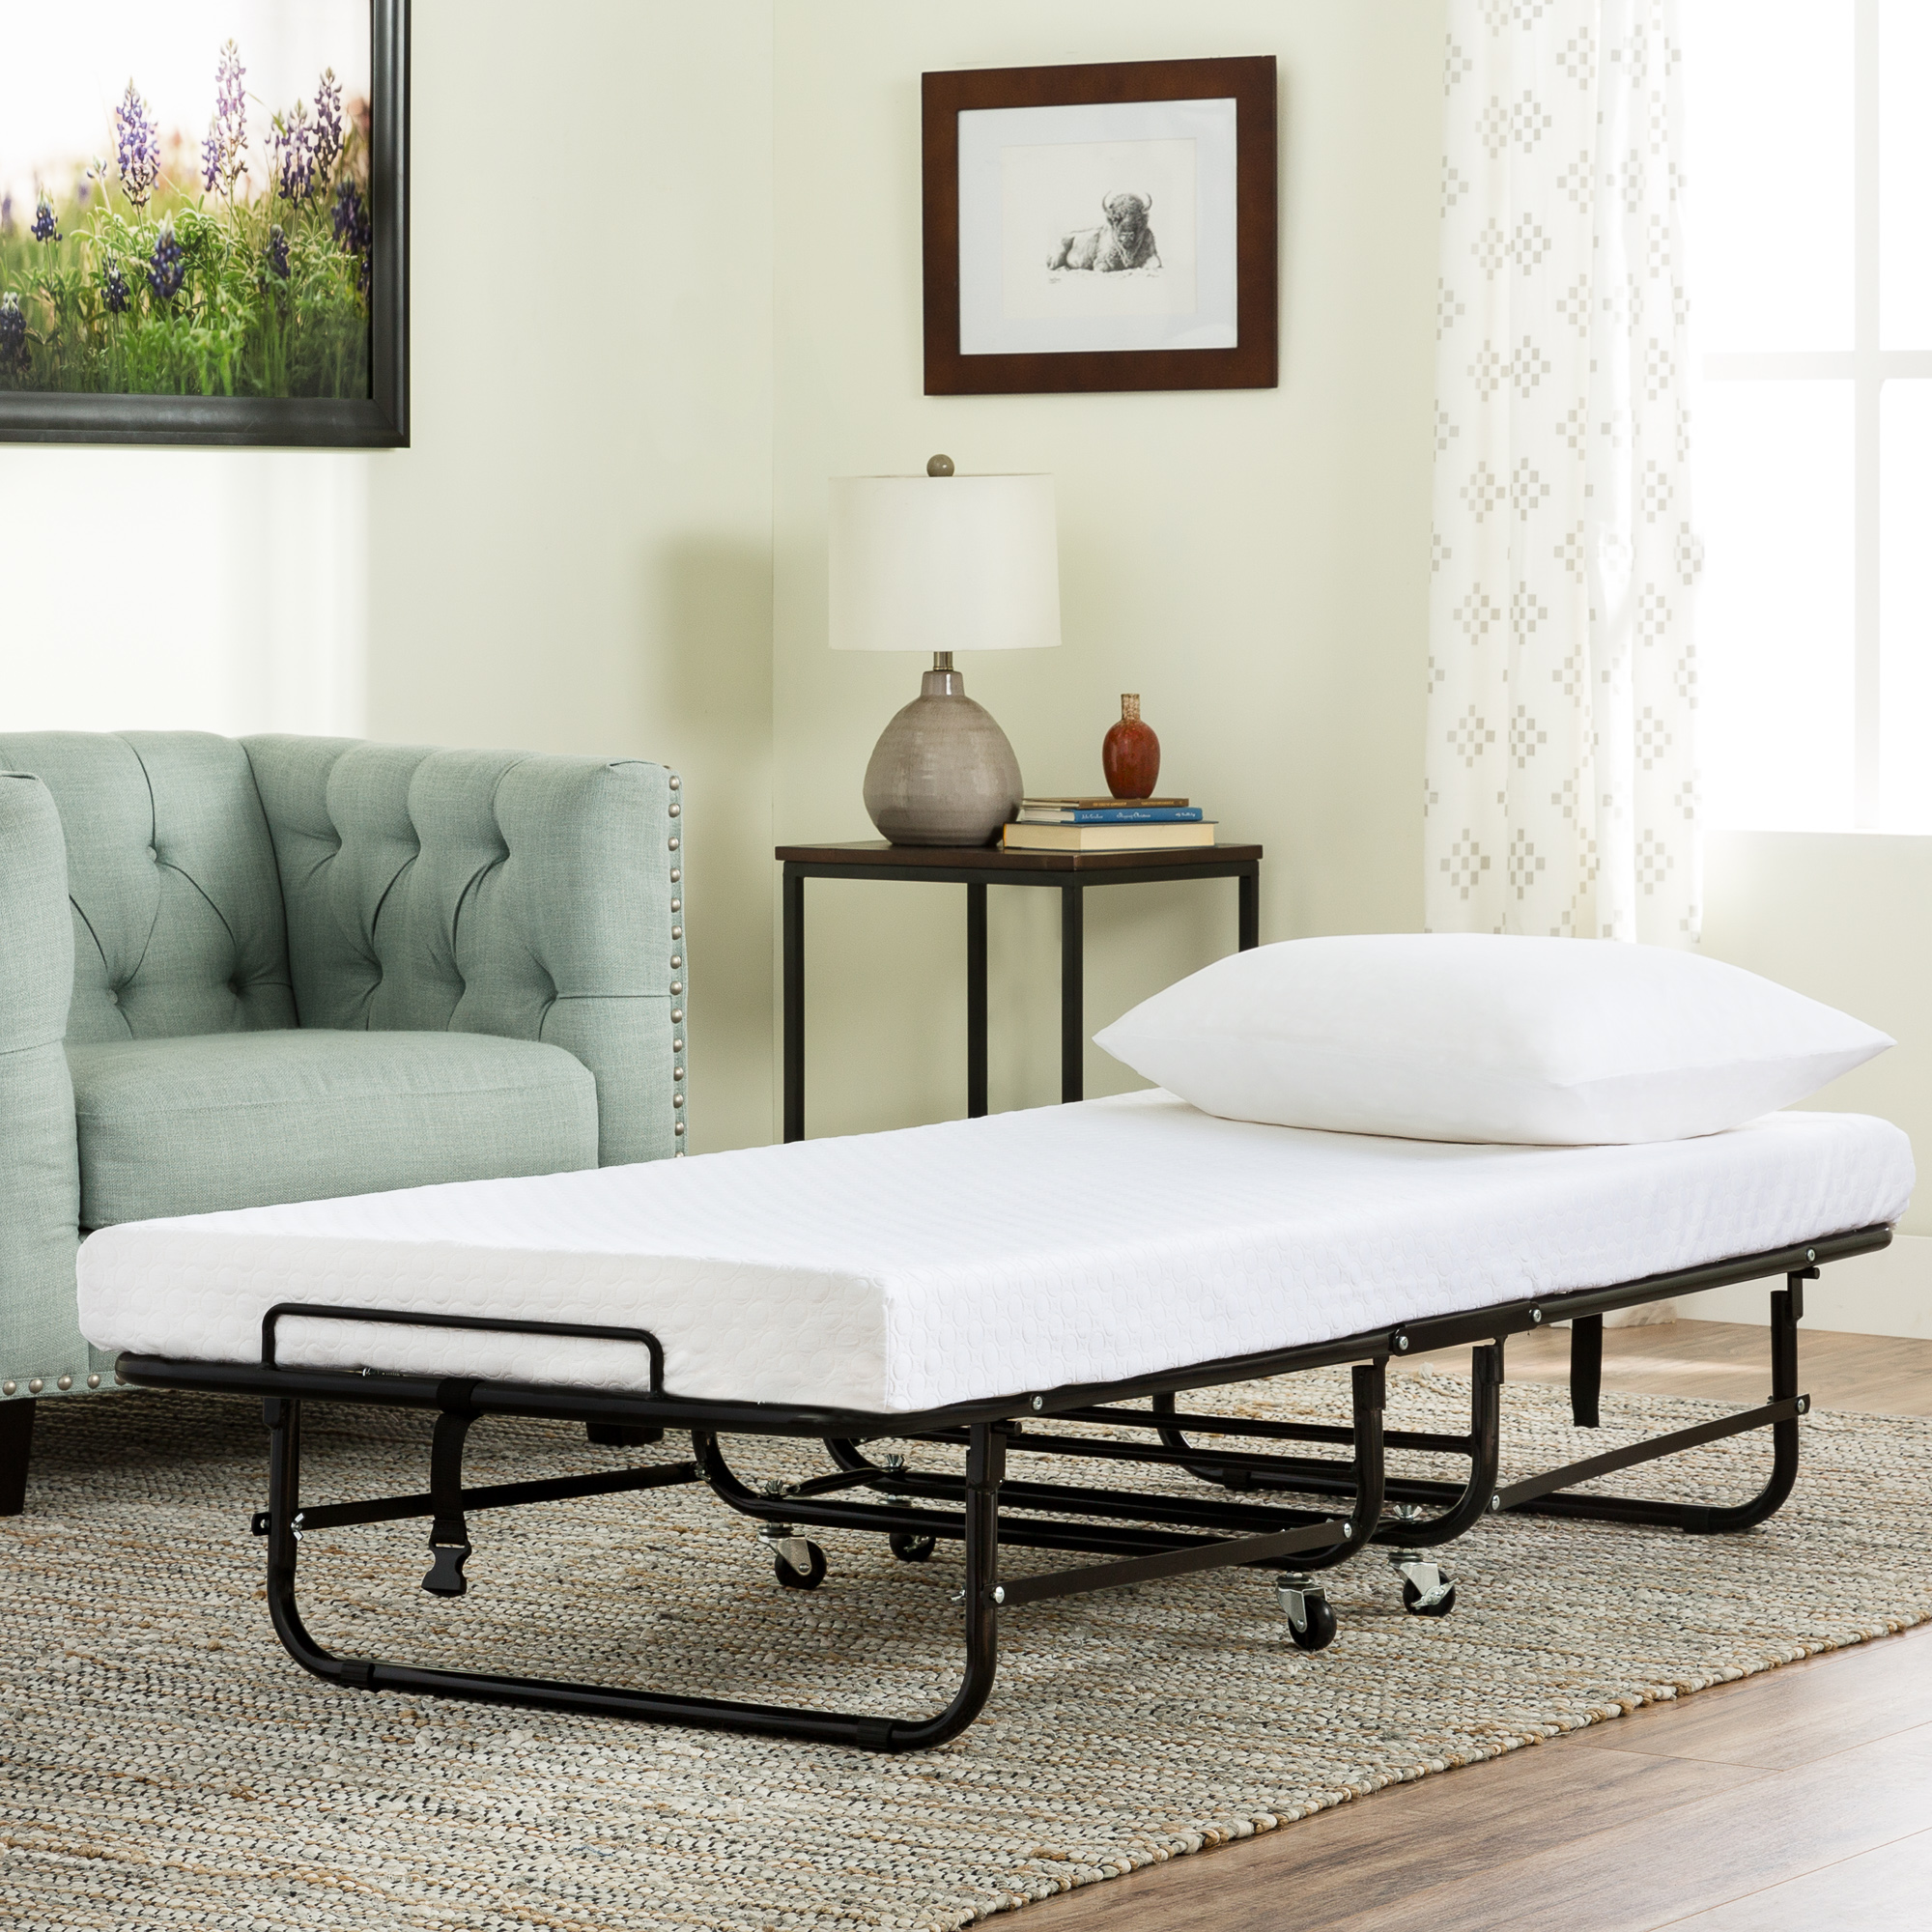 Better Homes & Garden Rollaway Guest Bed with Memory Foam Mattress